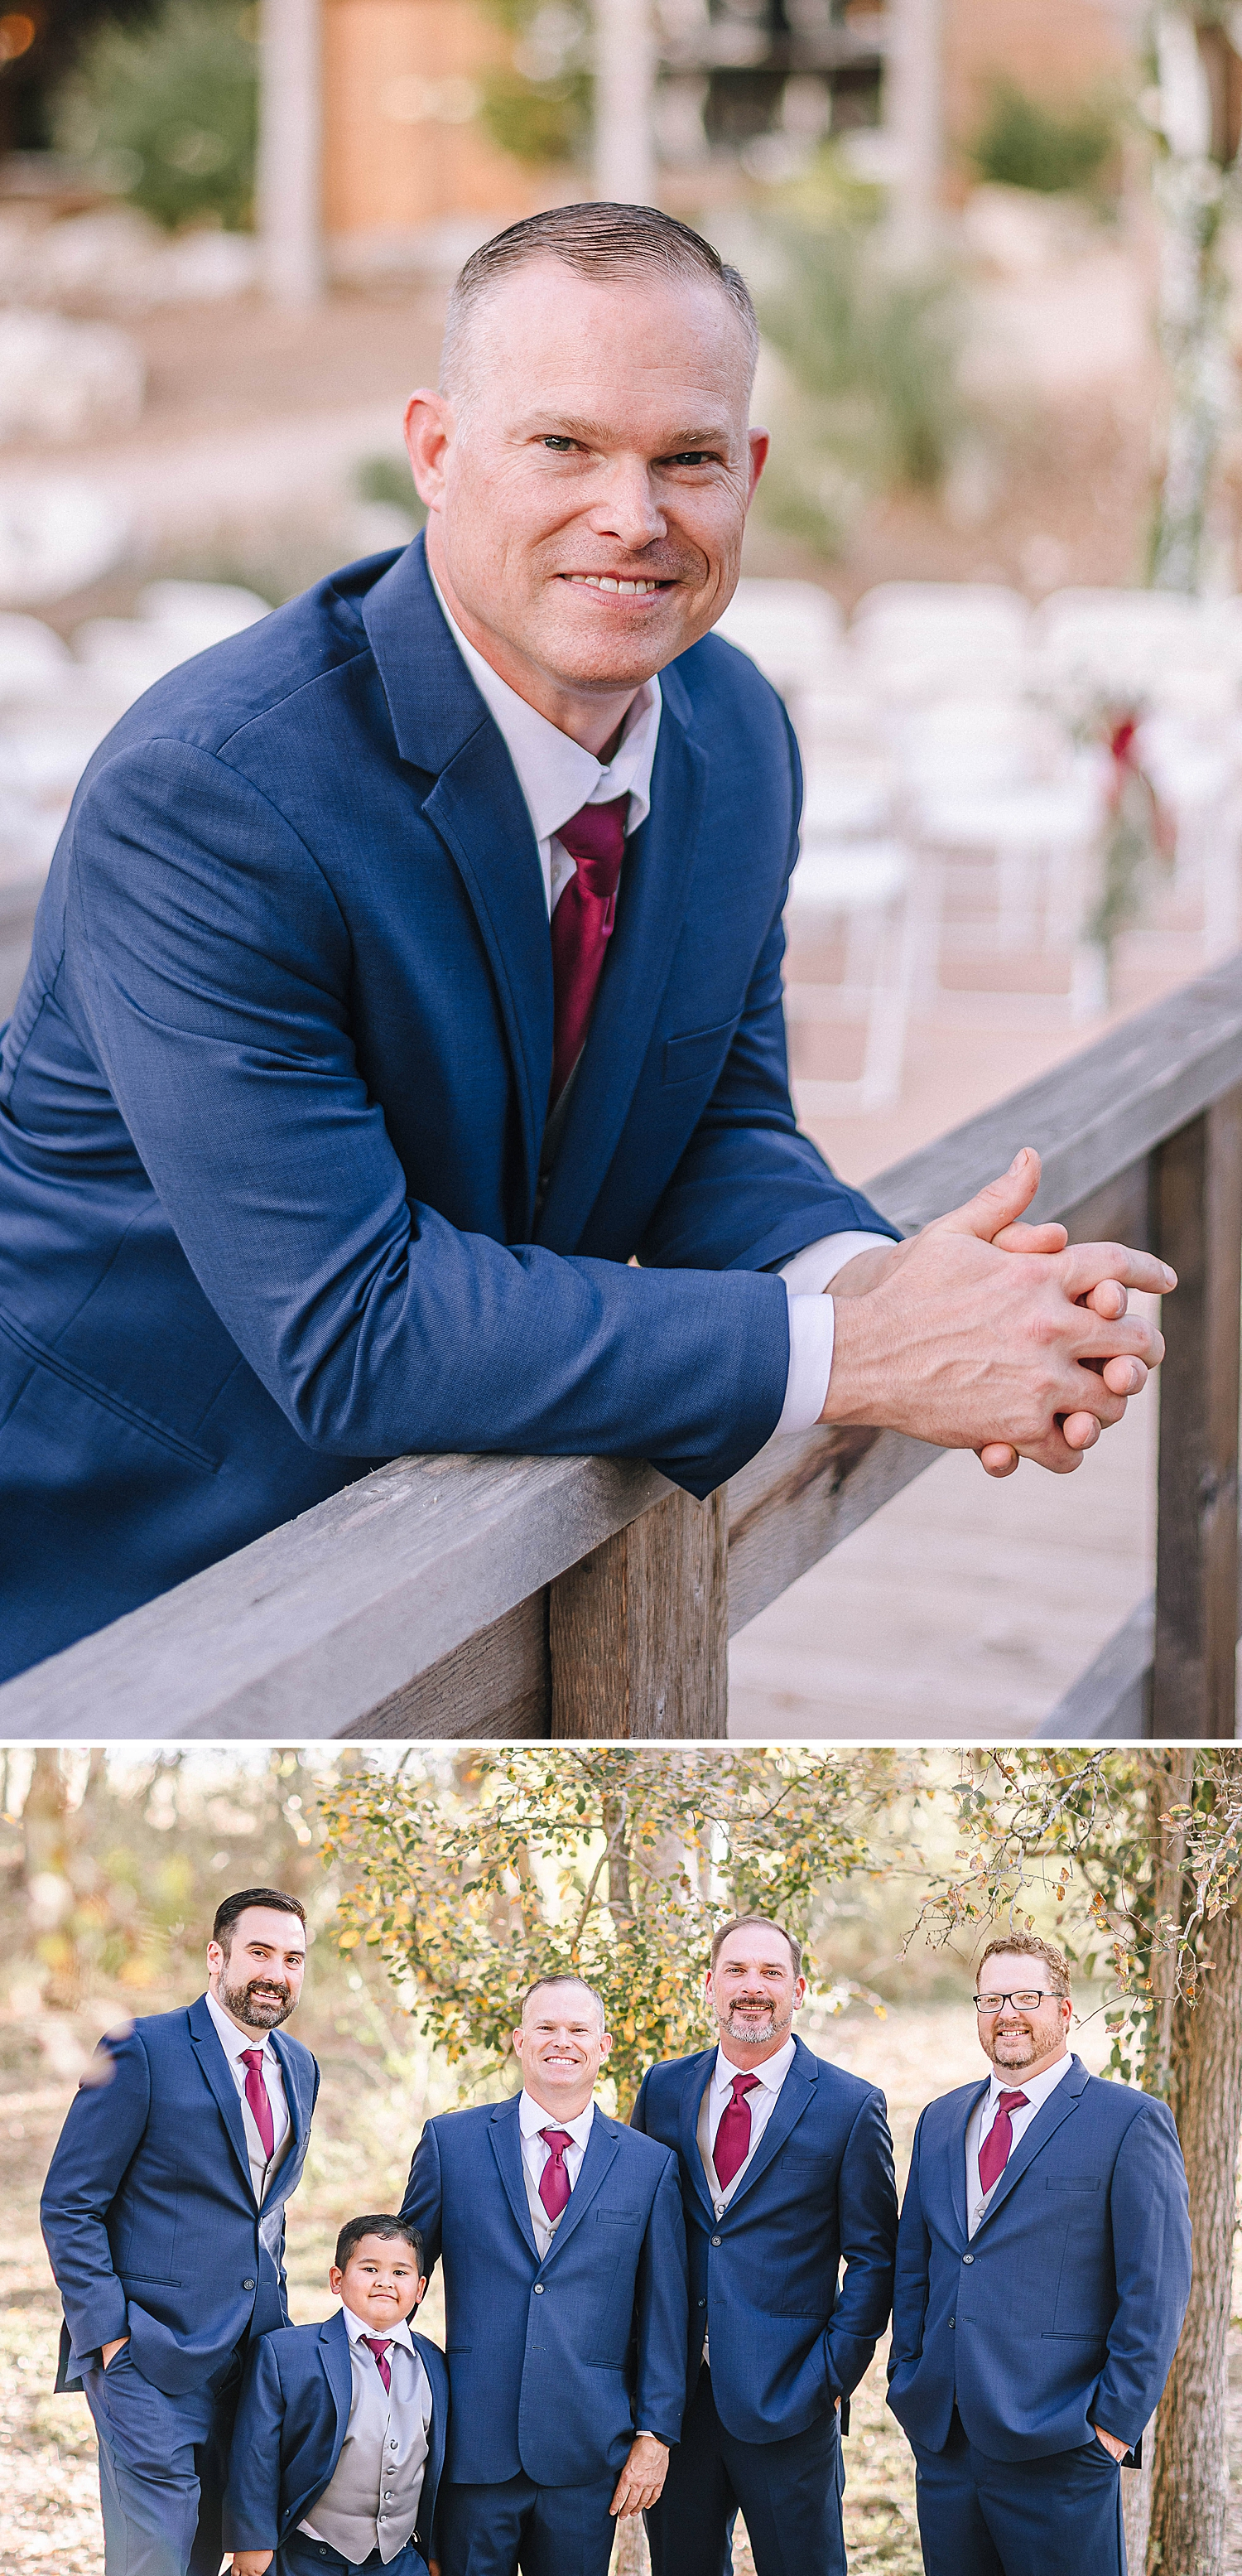 Geronimo-Oaks-Wedding-Venue-Seguin-Texas-Elegant-Navy-Burgundy-Wedding-Carly-Barton-Photography_0018.jpg